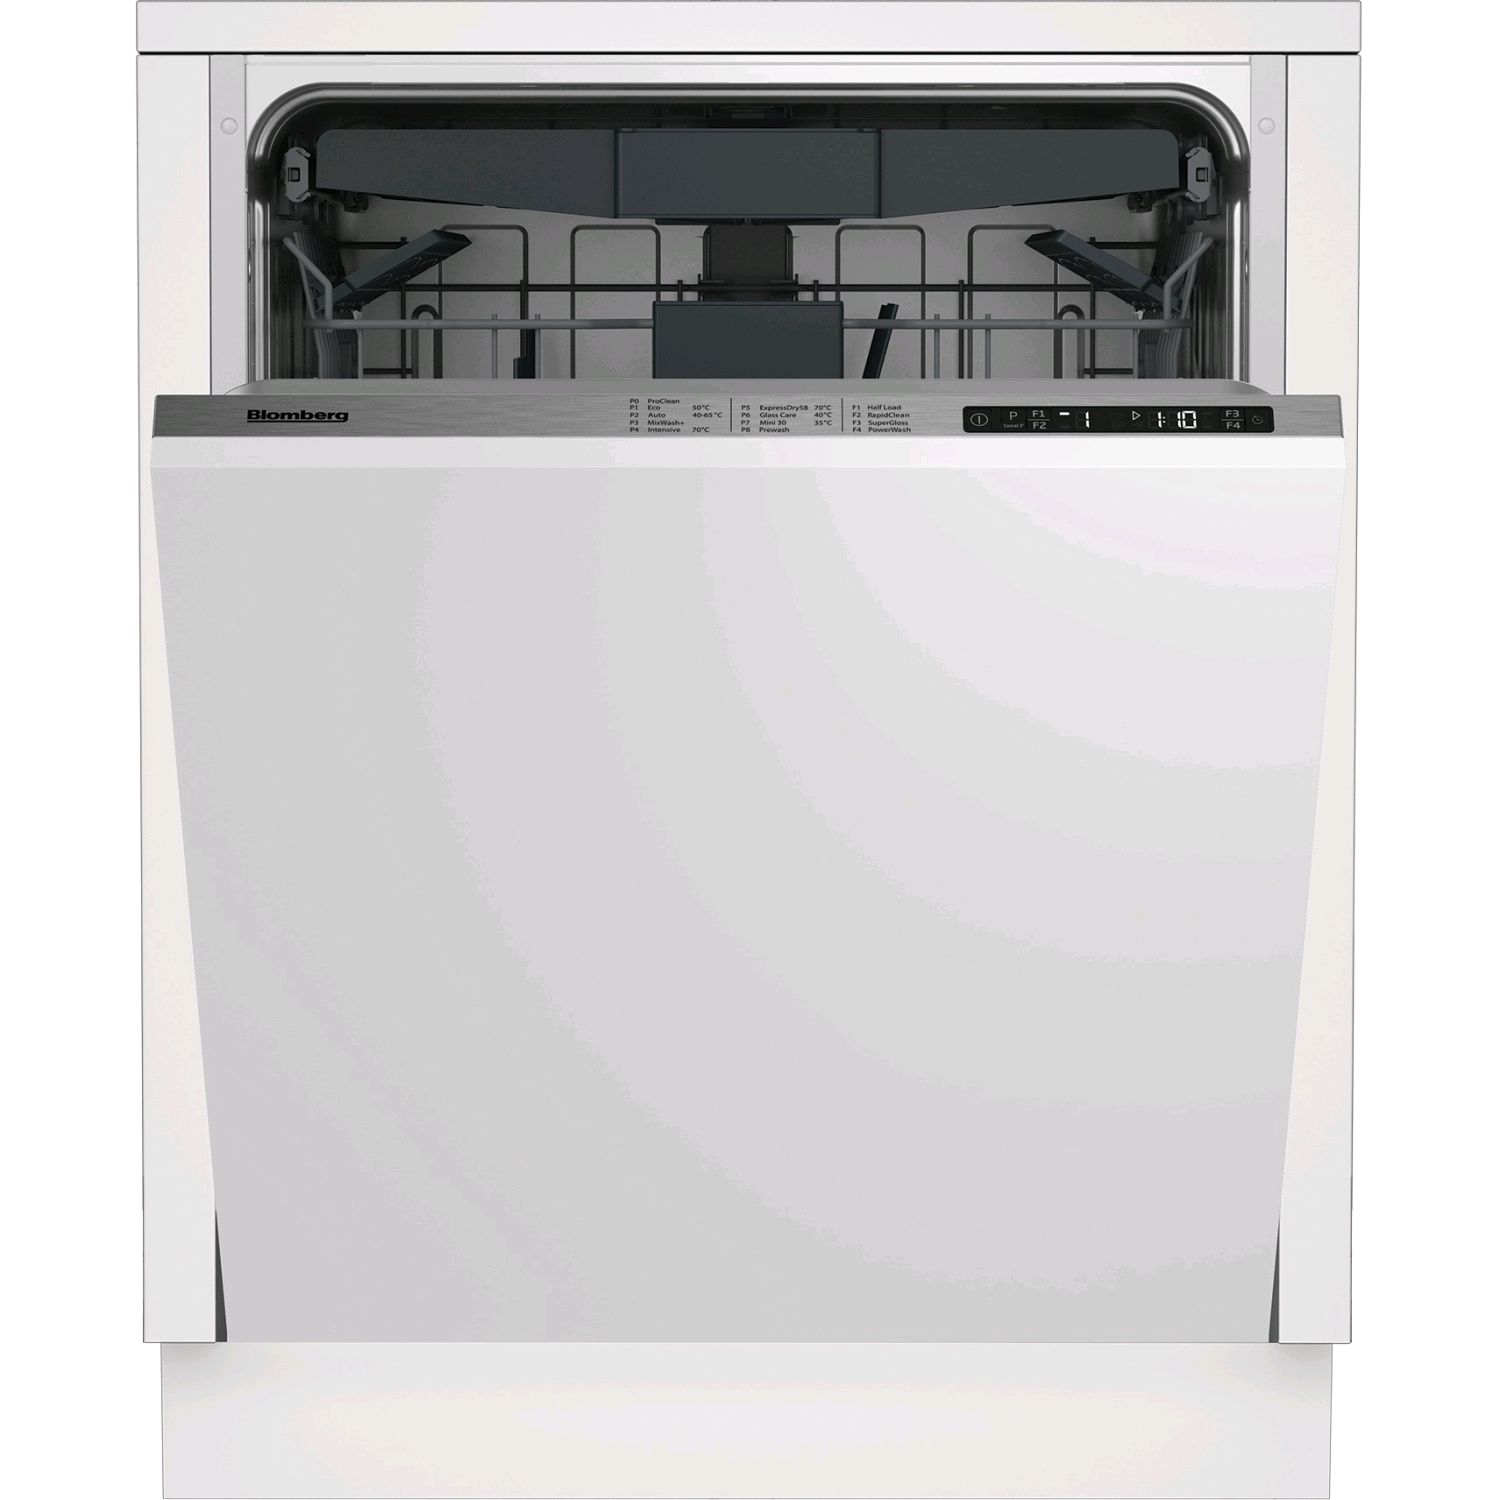 Blomberg  Dishwasher Built In 14 Place Settings Power Wash and Half Load Option    Which Best Buy Model!